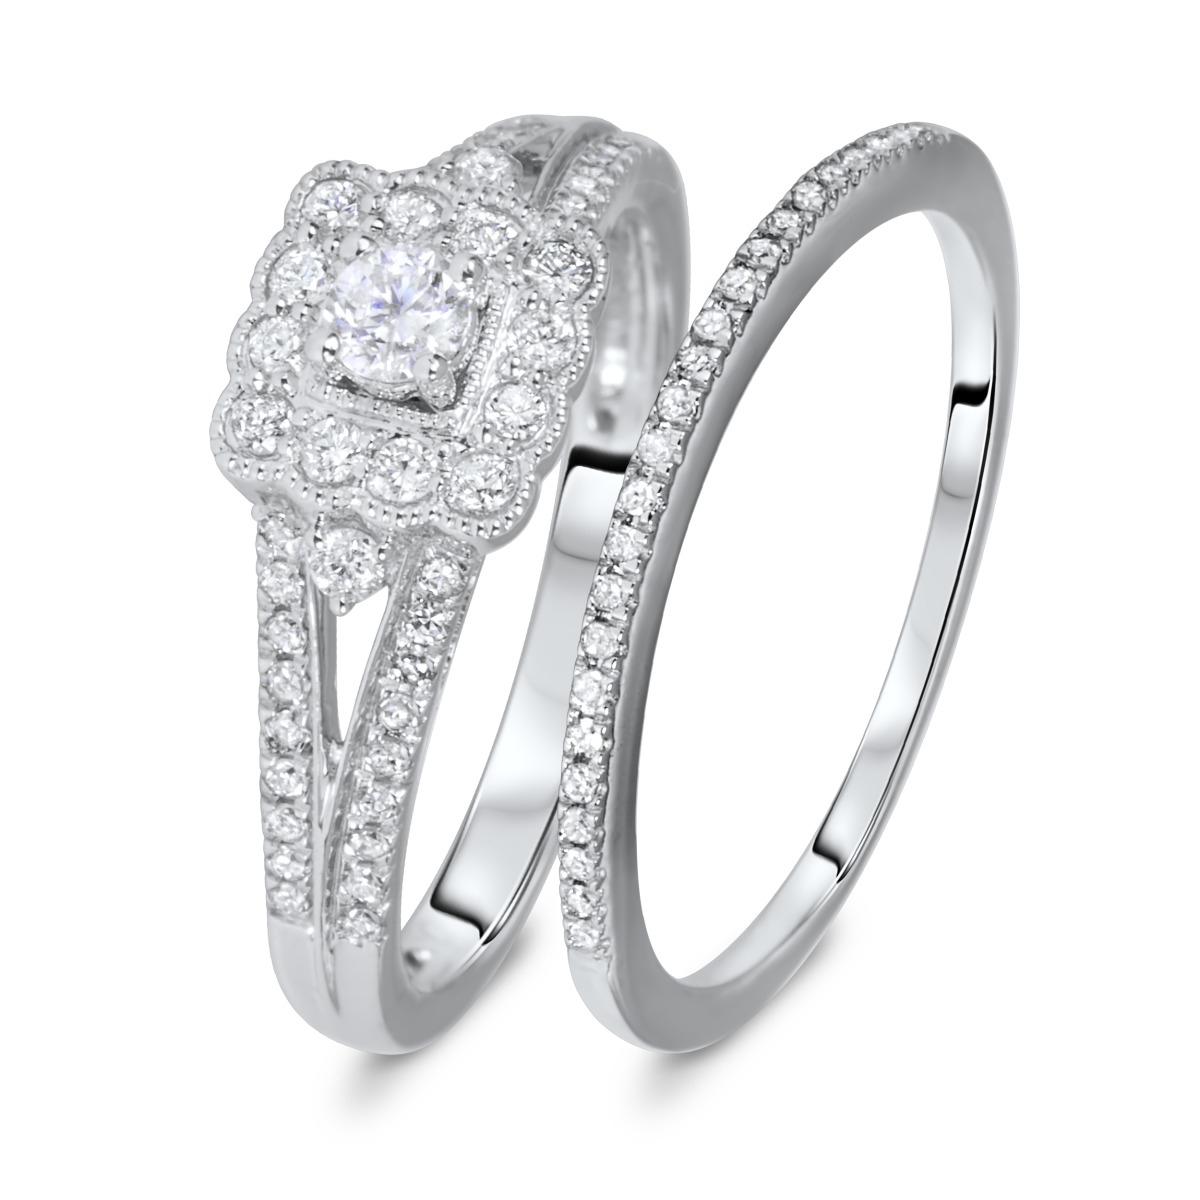 1/2 CT. T.W. Round Cut Diamond Ladies Bridal Wedding Ring Set 14K White Gold